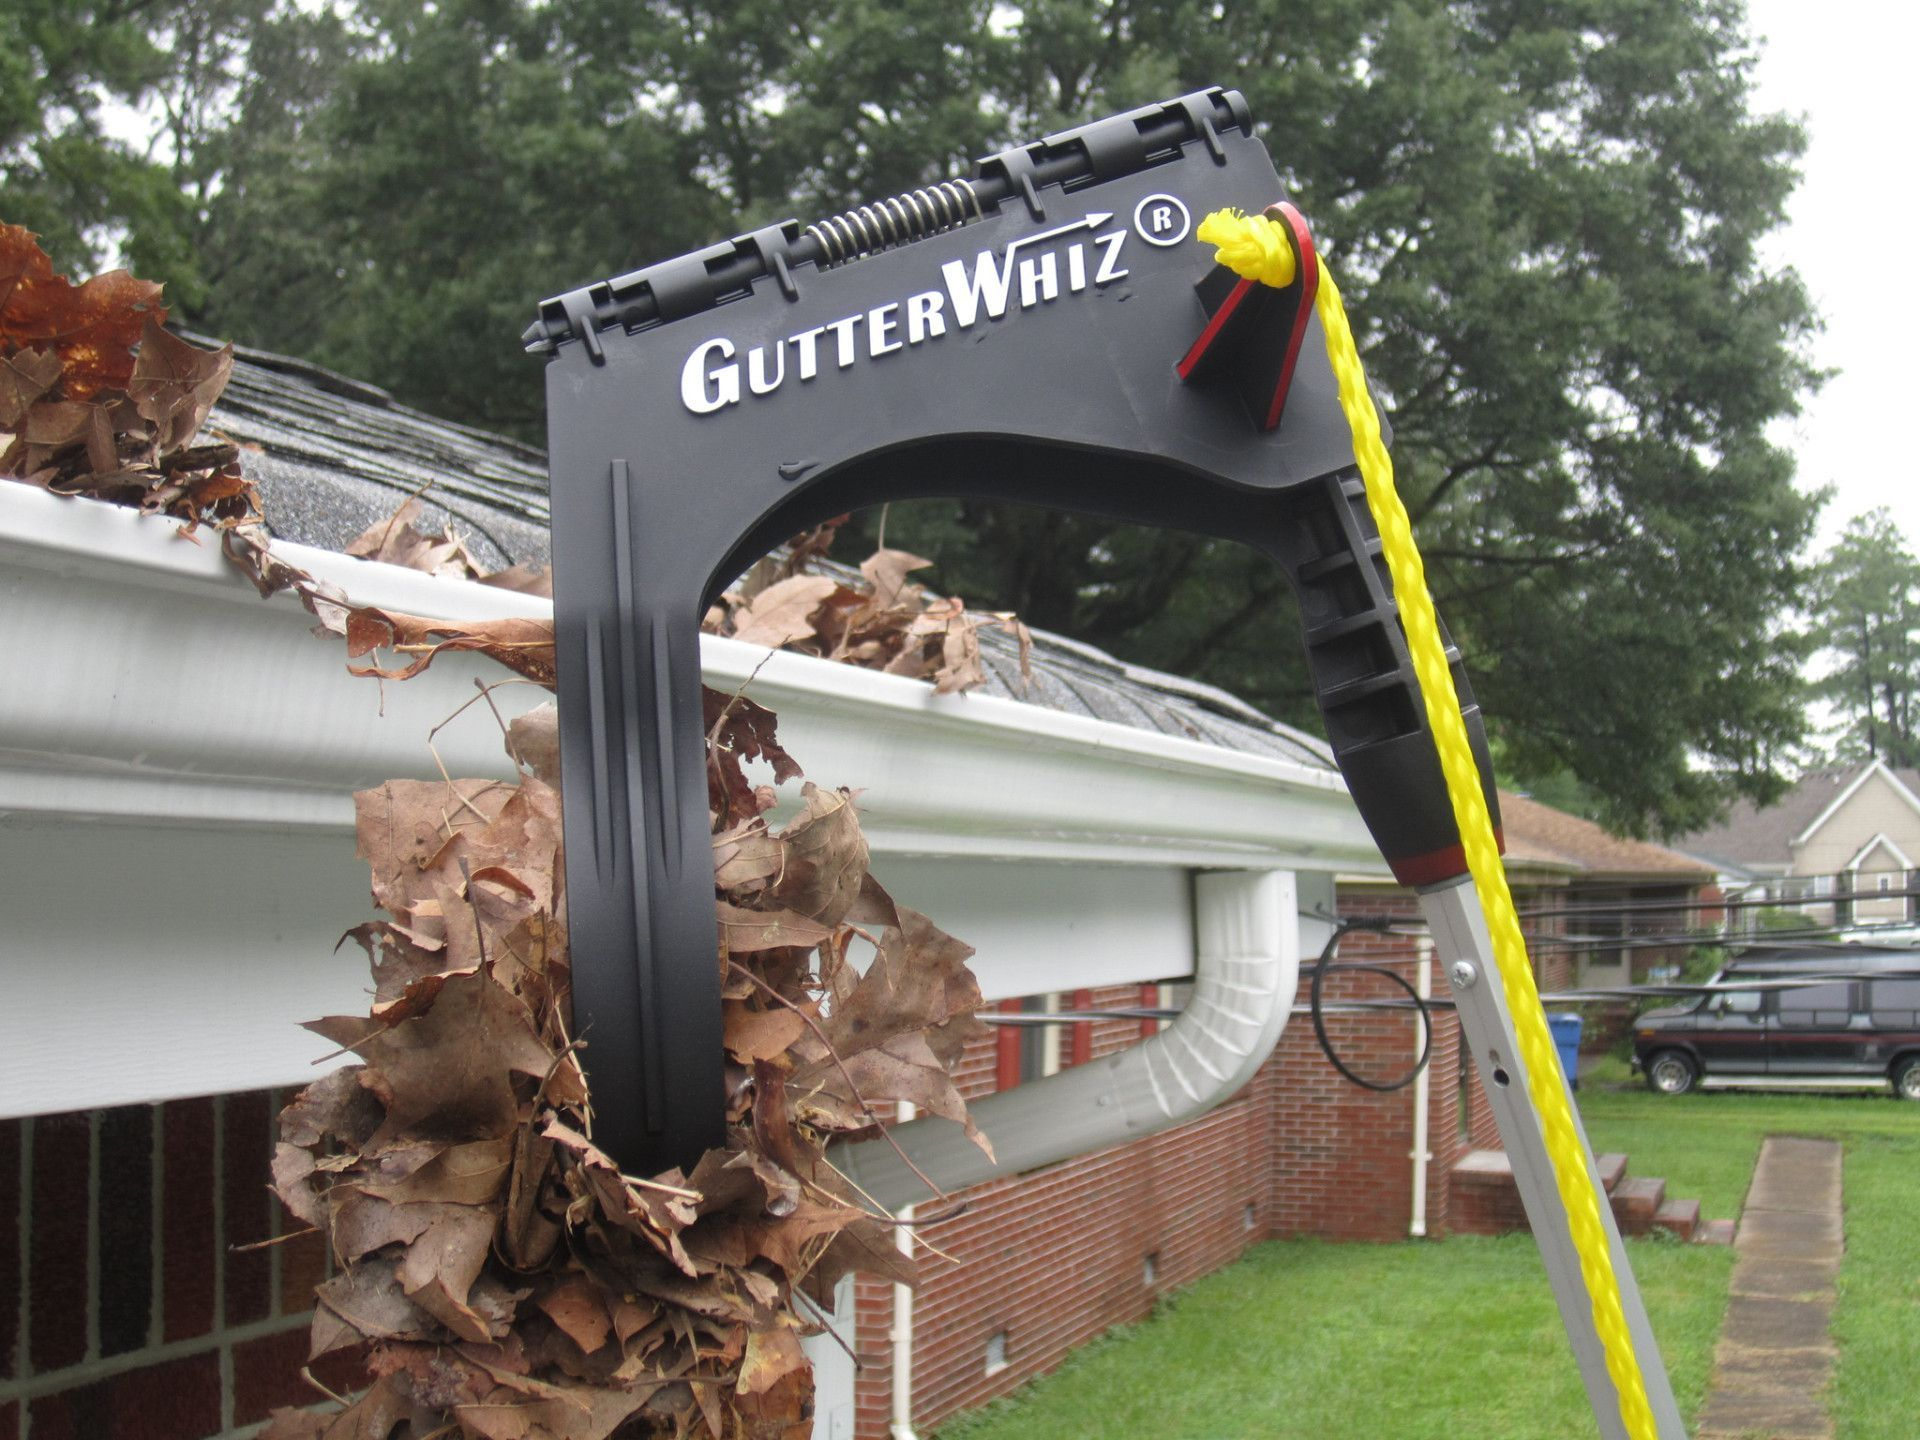 Gutterwhiz Gutter Cleaner Cleaning Gutters Gutter Cleaning Tool Gutter Cleaner